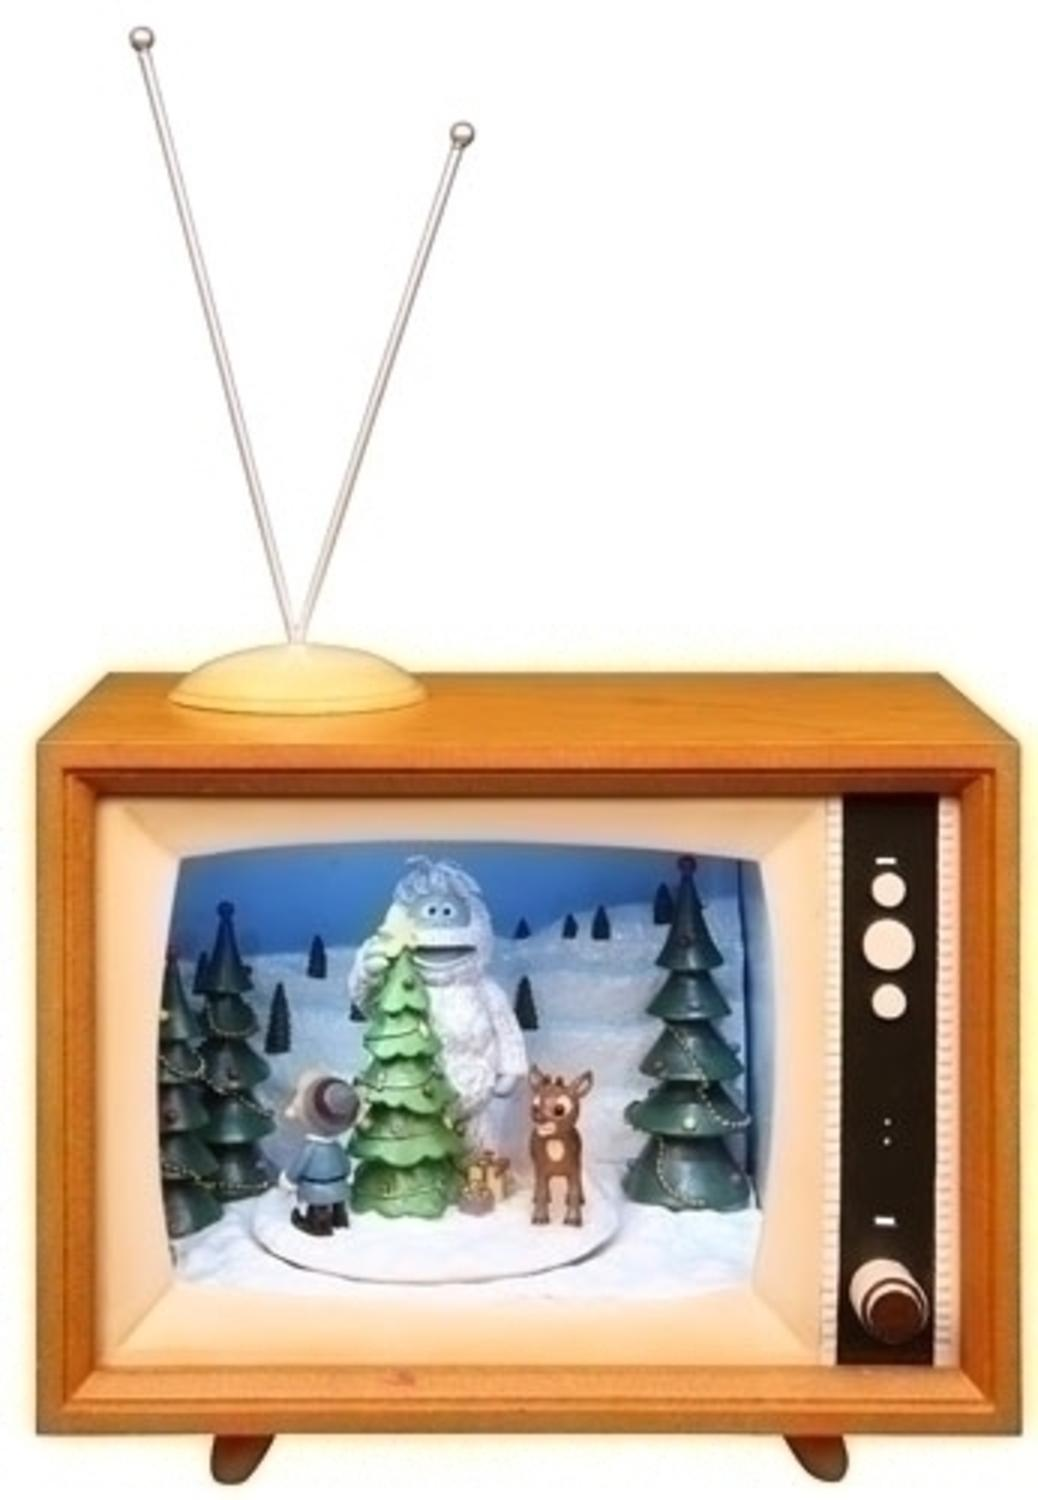 7 musical animated rudolph winter scene tv box christmas decoration walmartcom - Rudolph And Friends Christmas Decorations